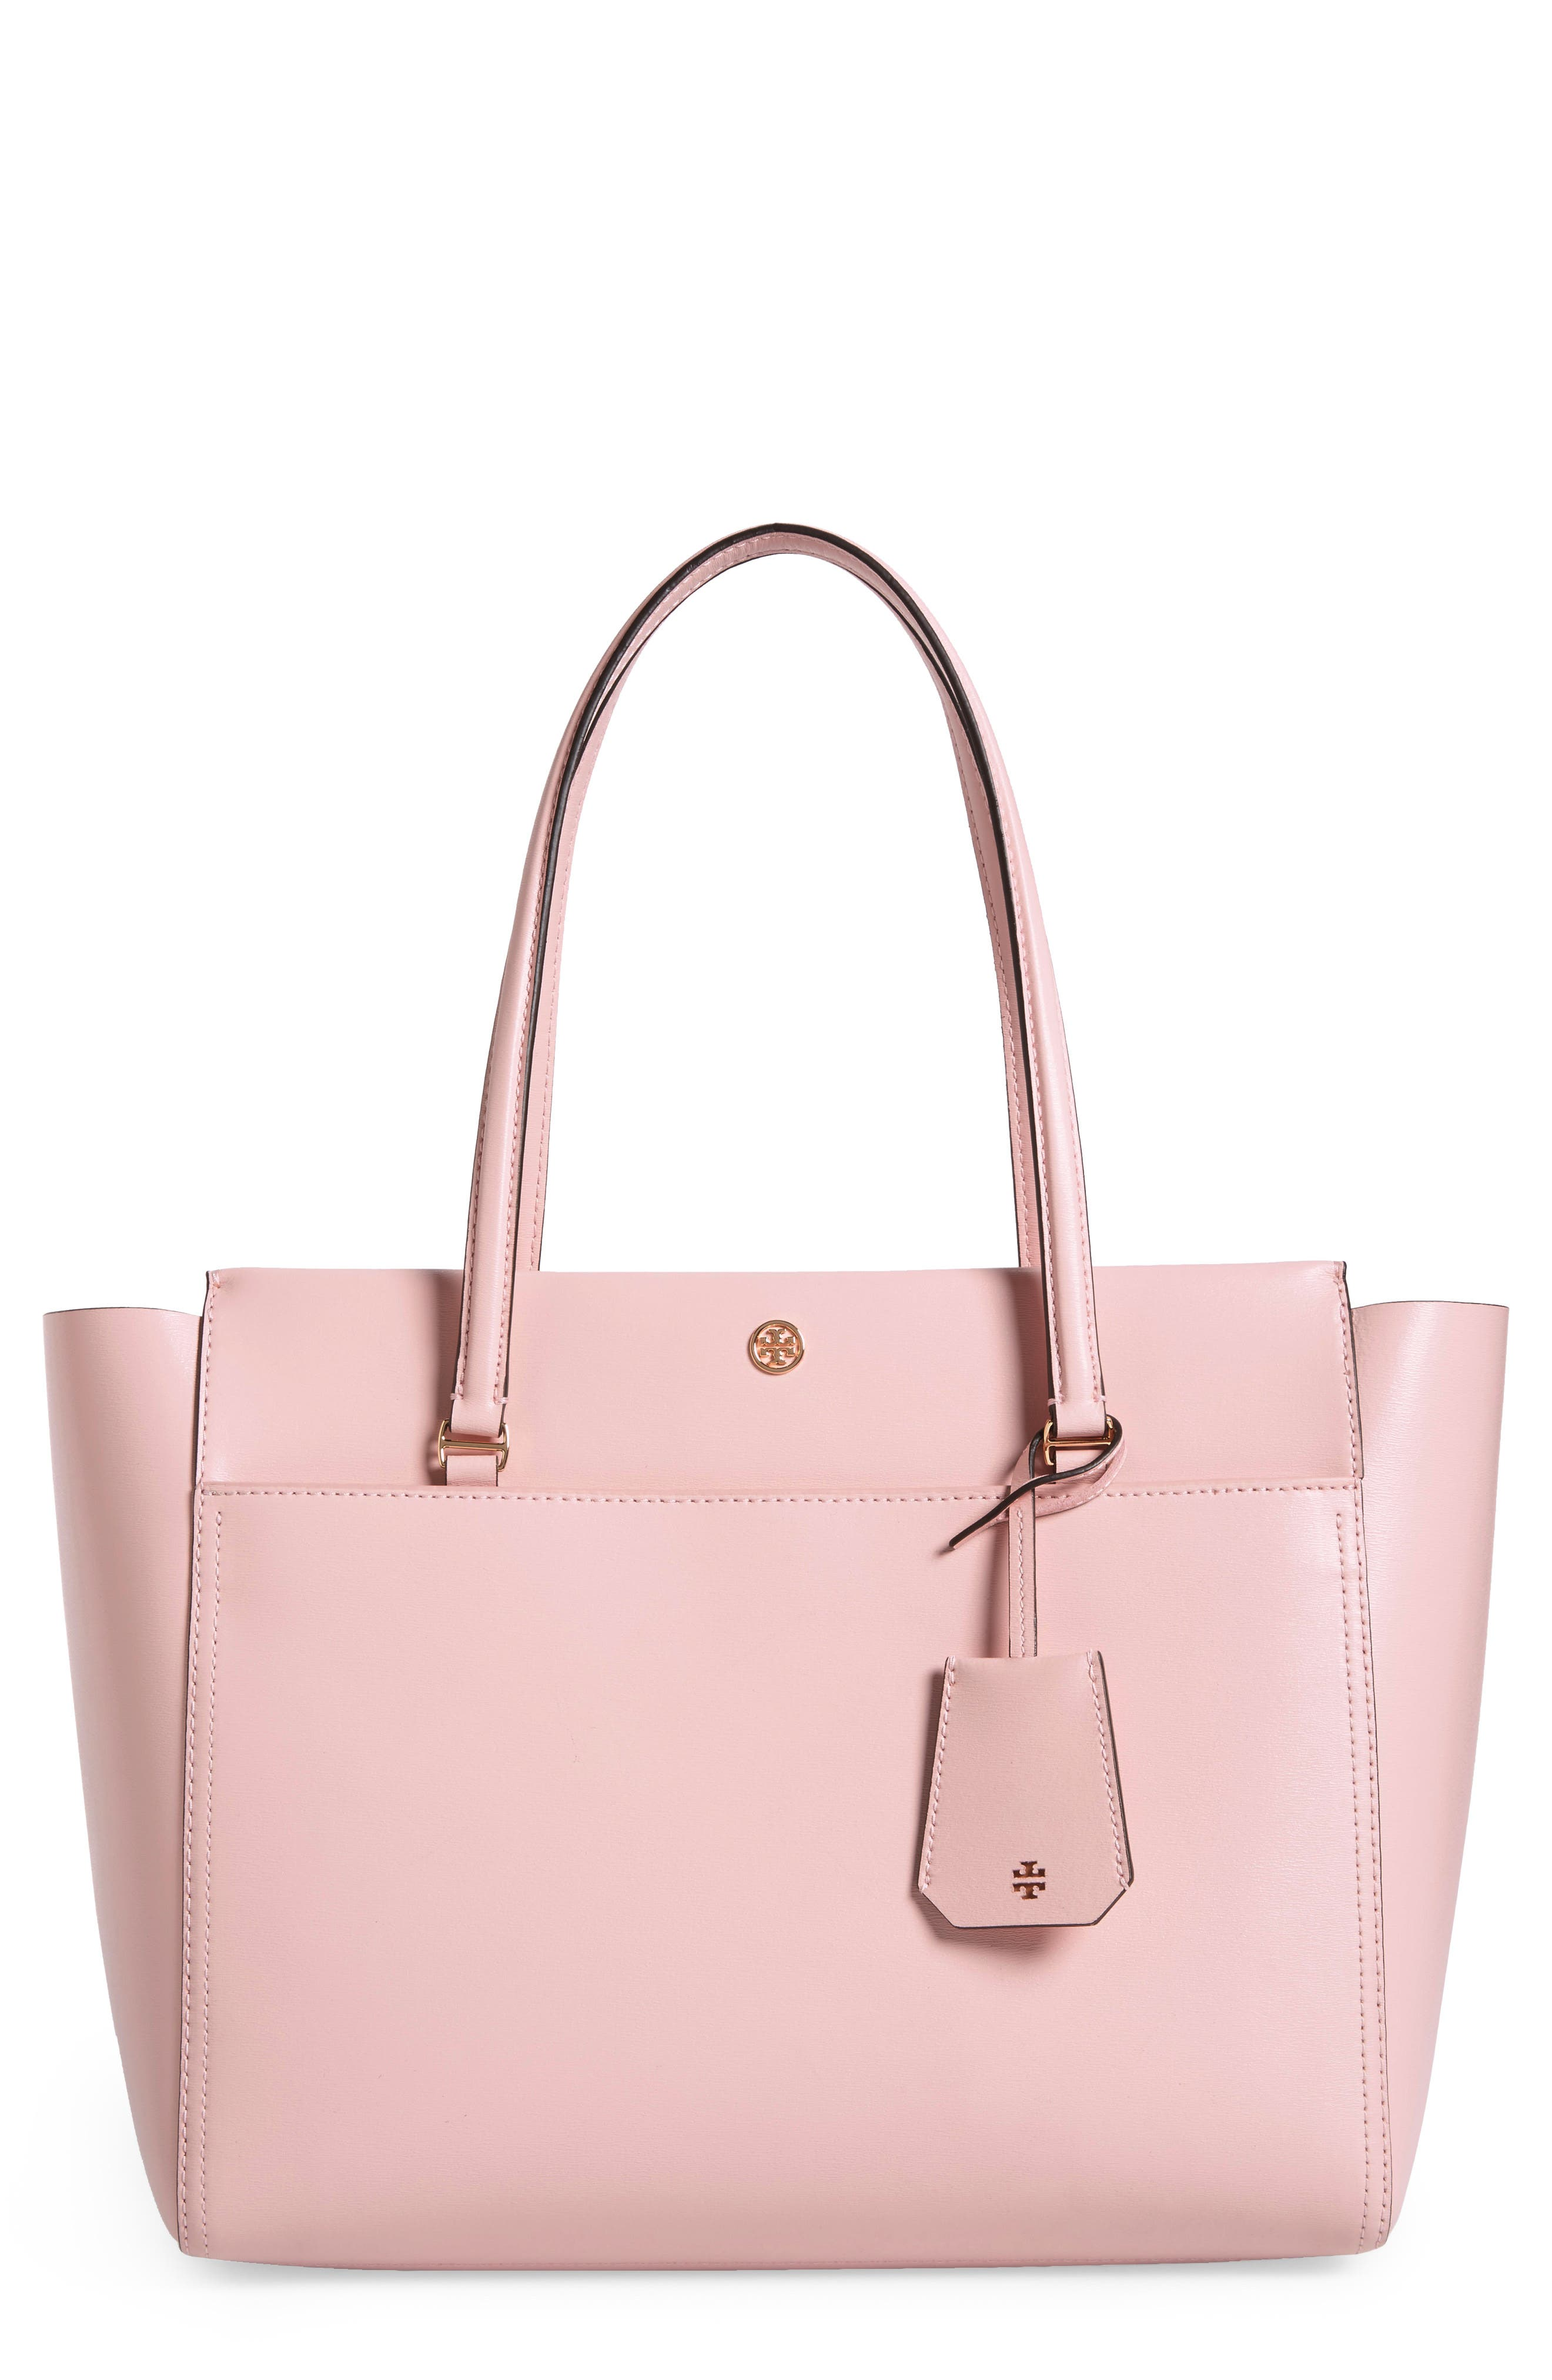 Main Image - Tory Burch Parker Leather Tote